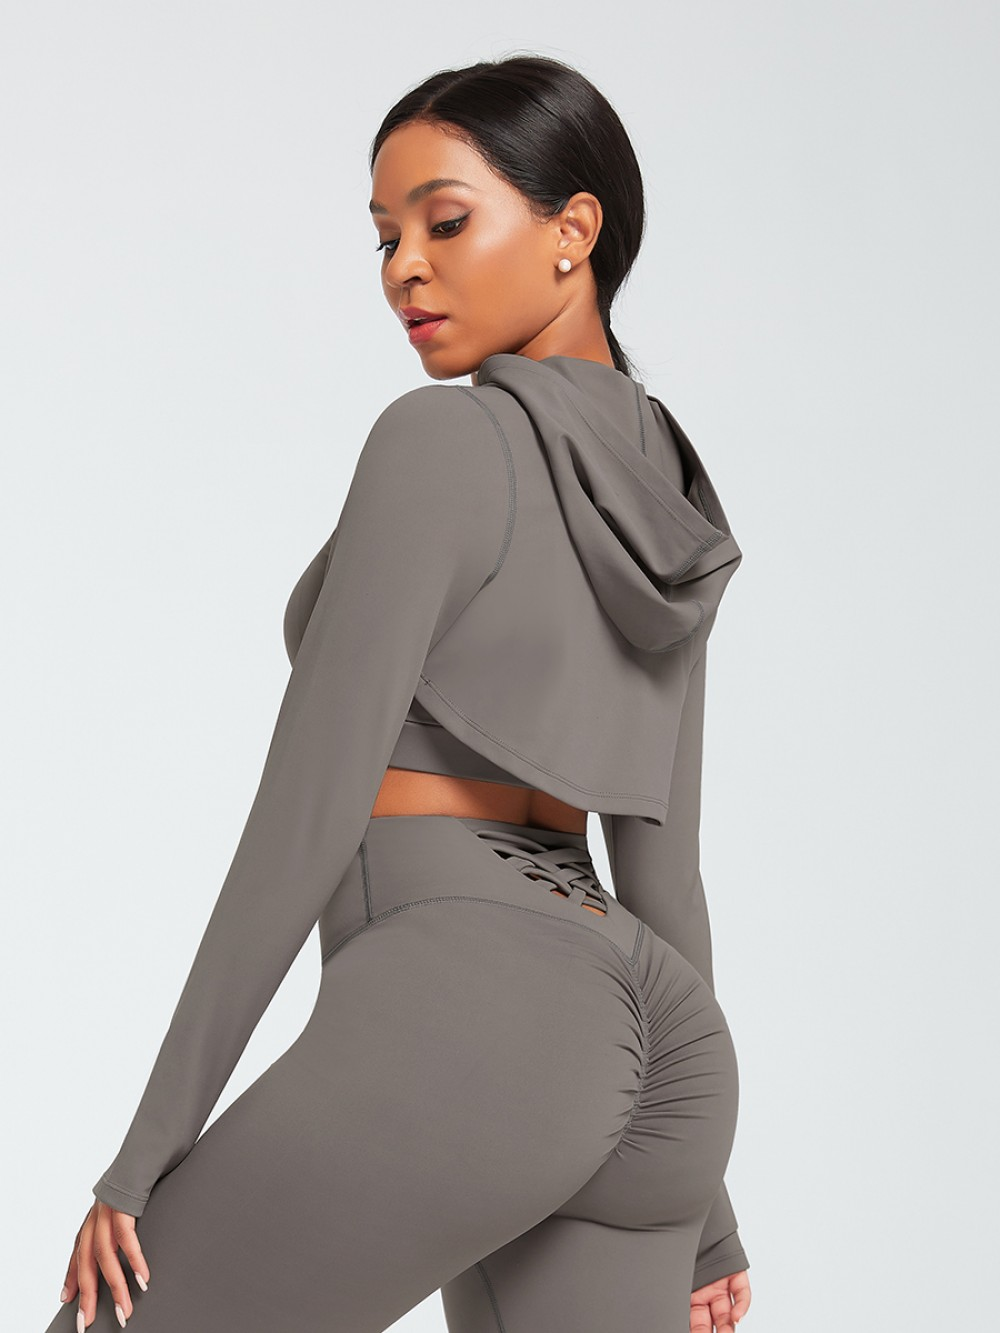 Gray Short Front Sports Top Long Sleeve Elastic Material